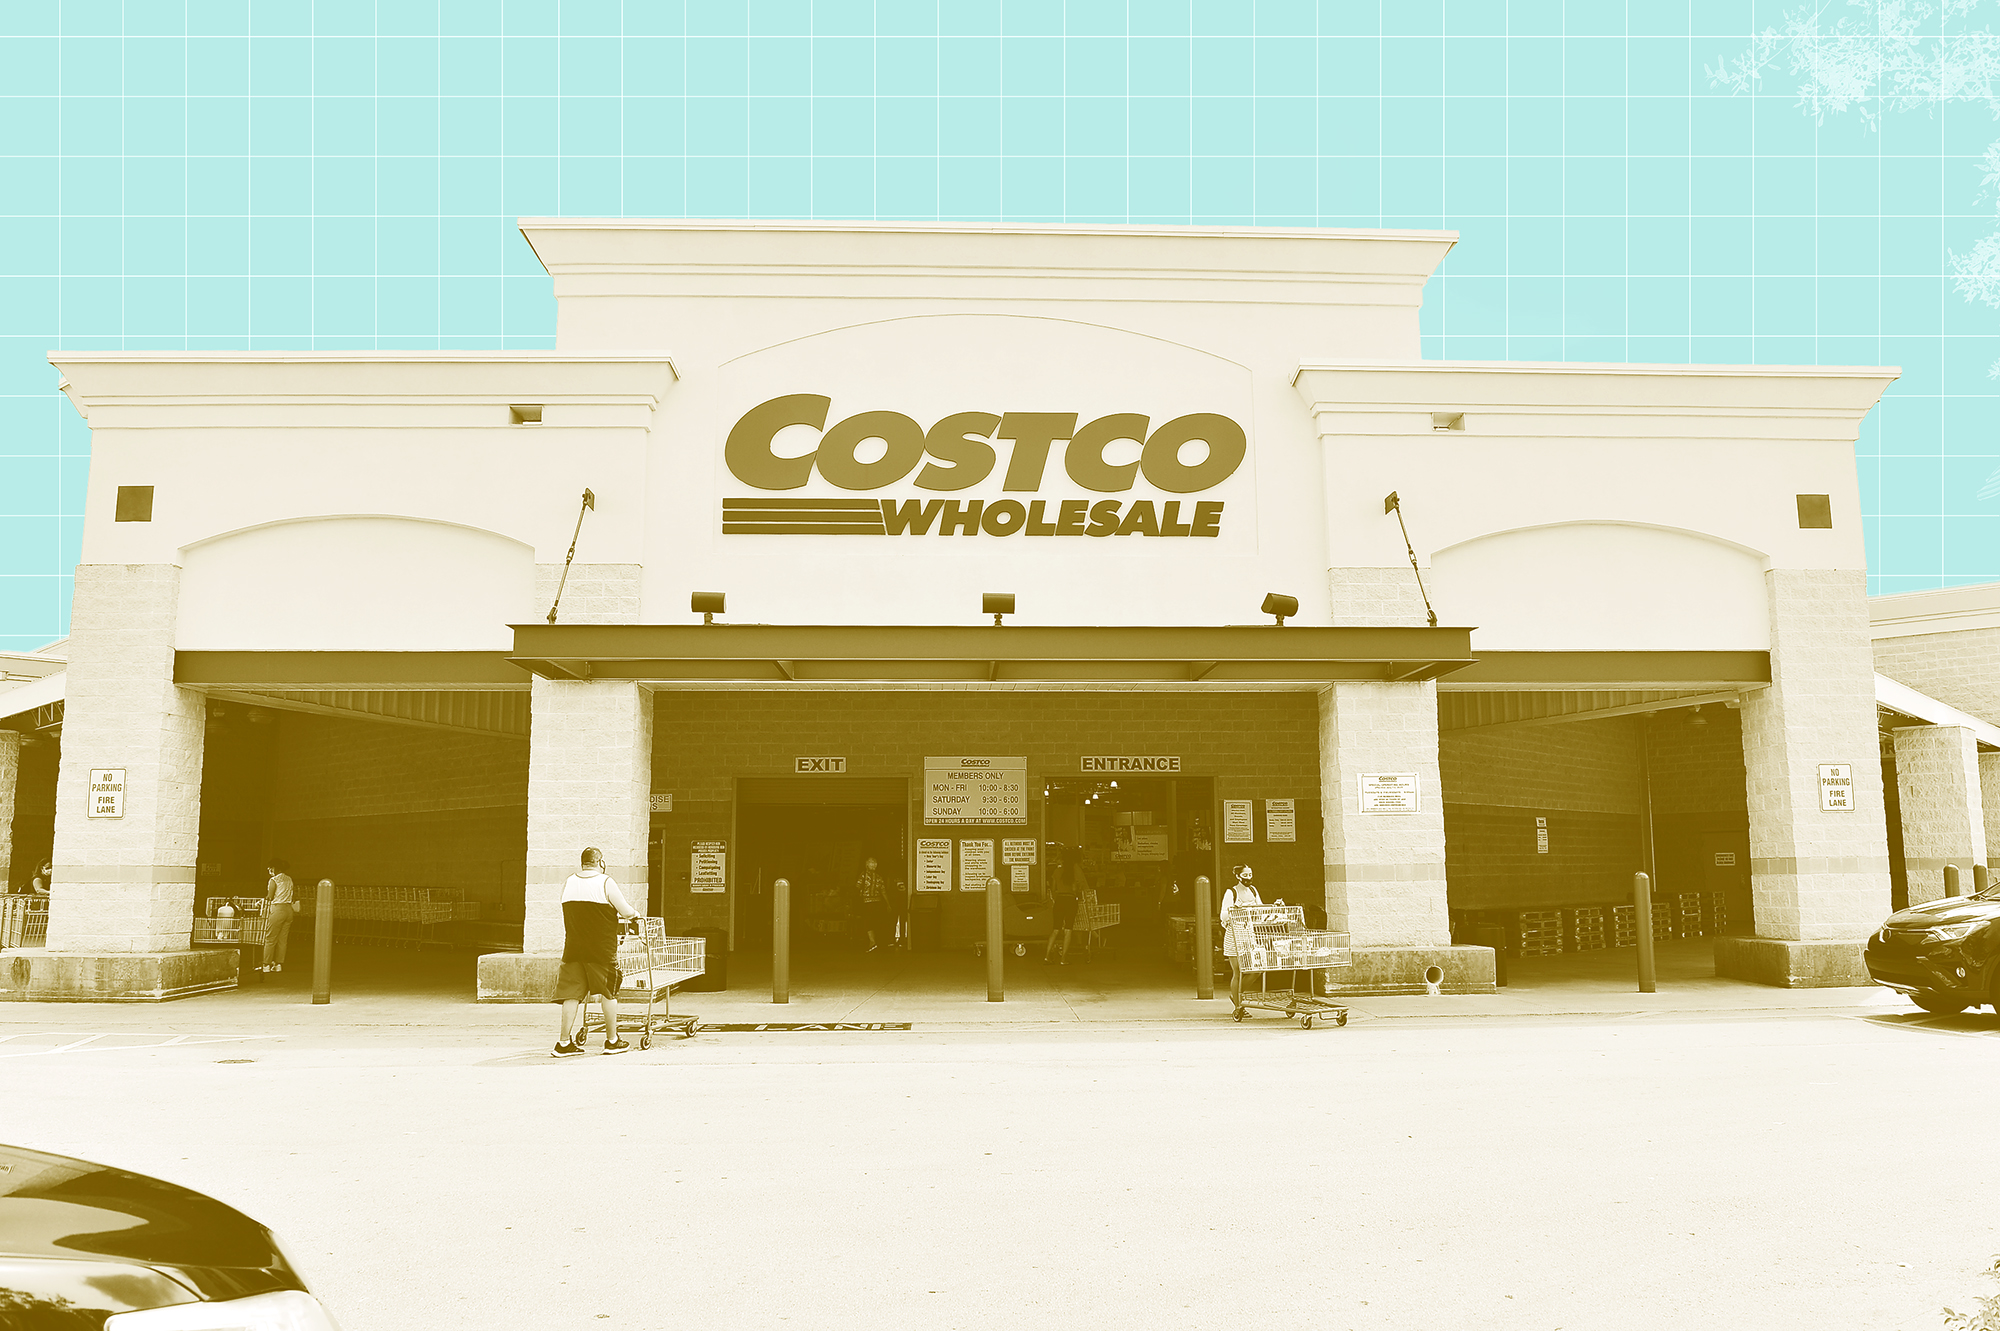 Costco Store front with a design treatment